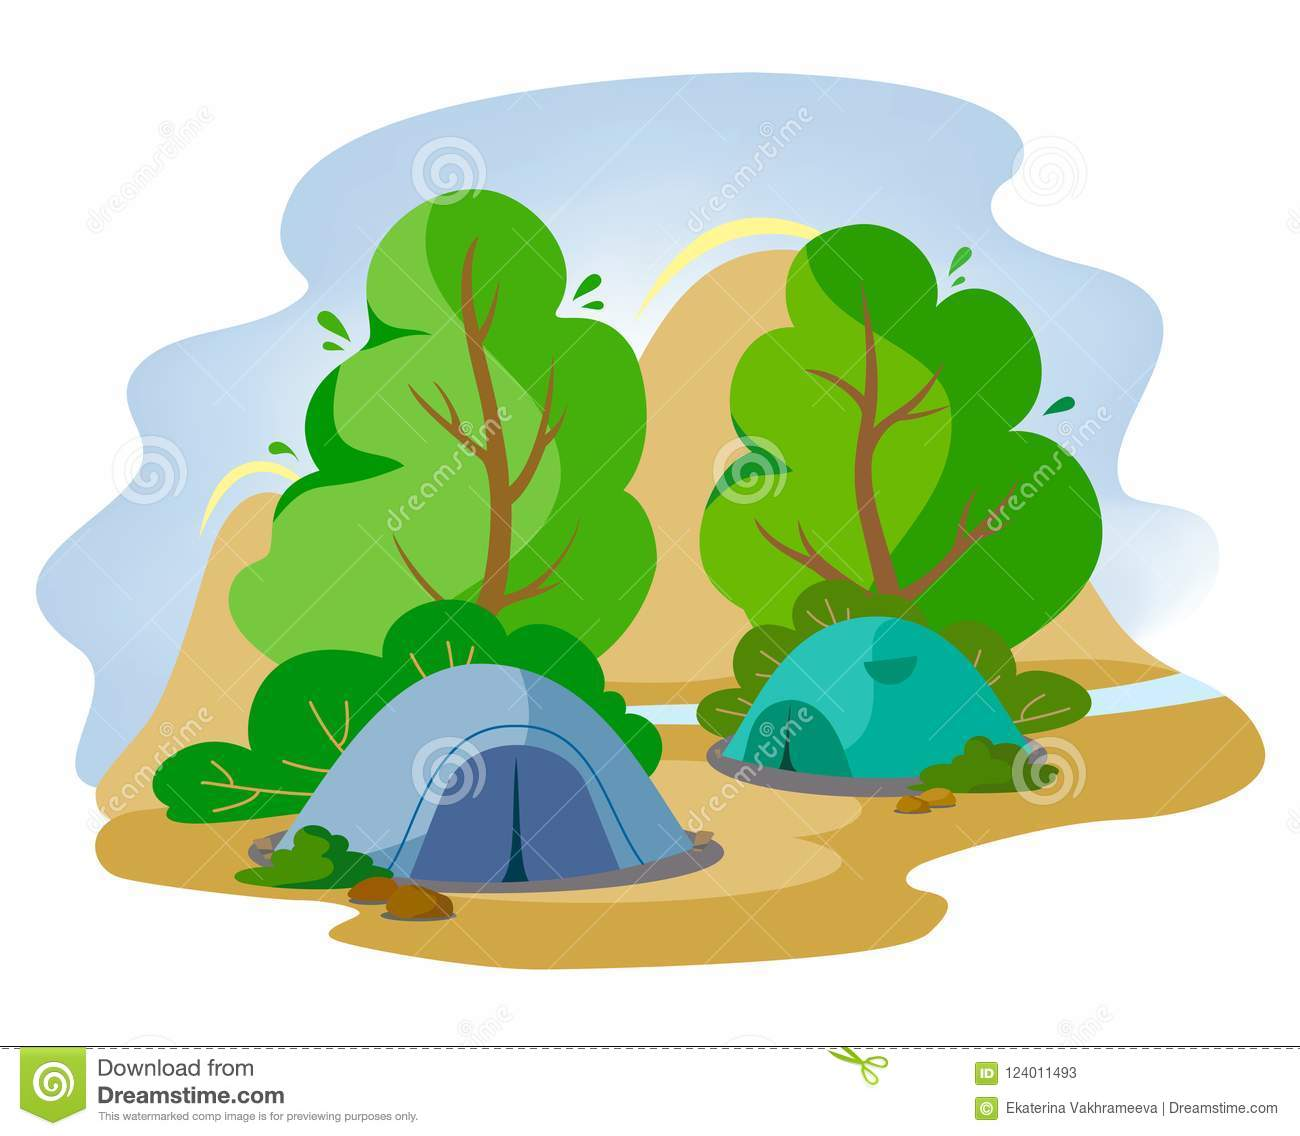 Tents in the forest next to the mountains in the style of flat. Traveling with tents to the mountains.